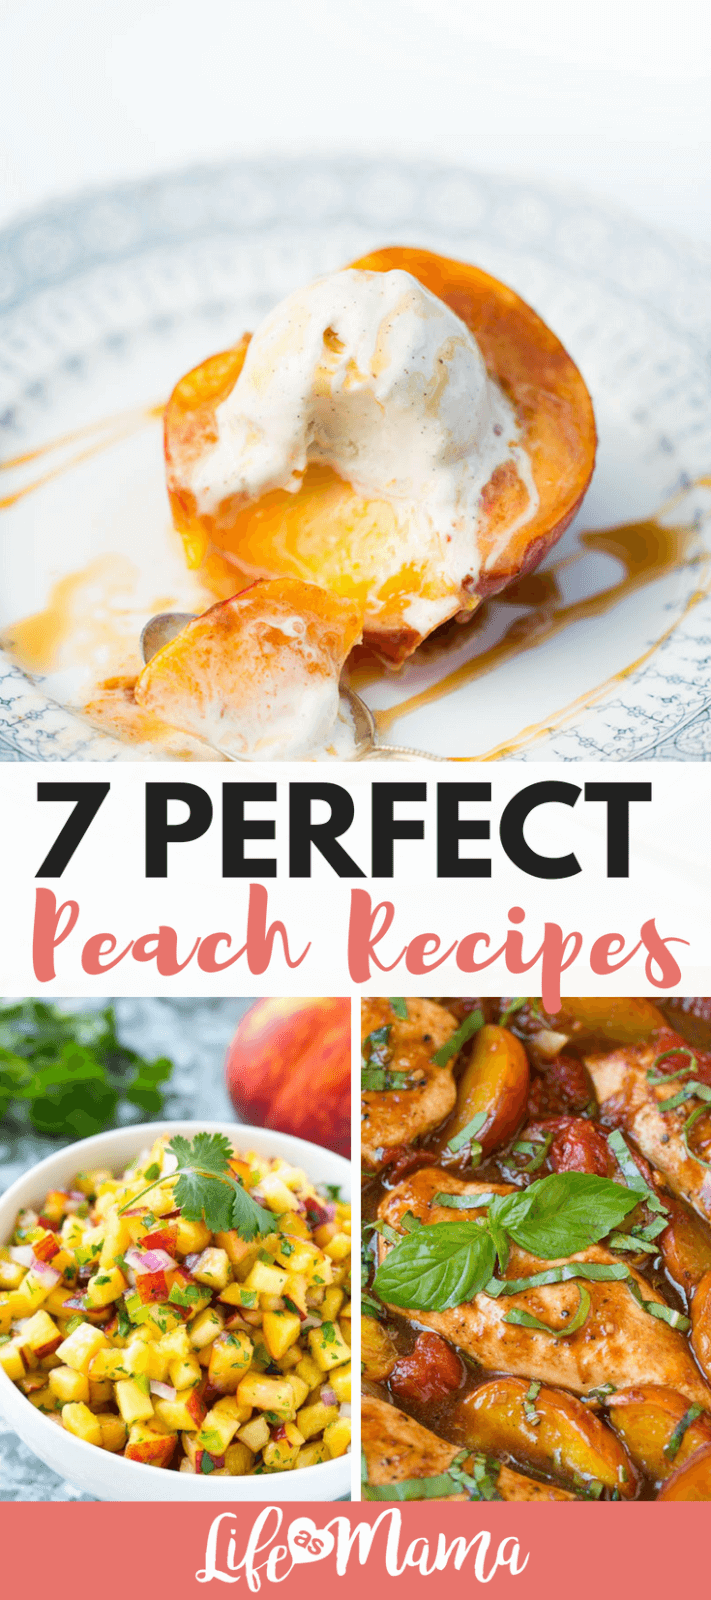 7 Perfect Peach Recipes